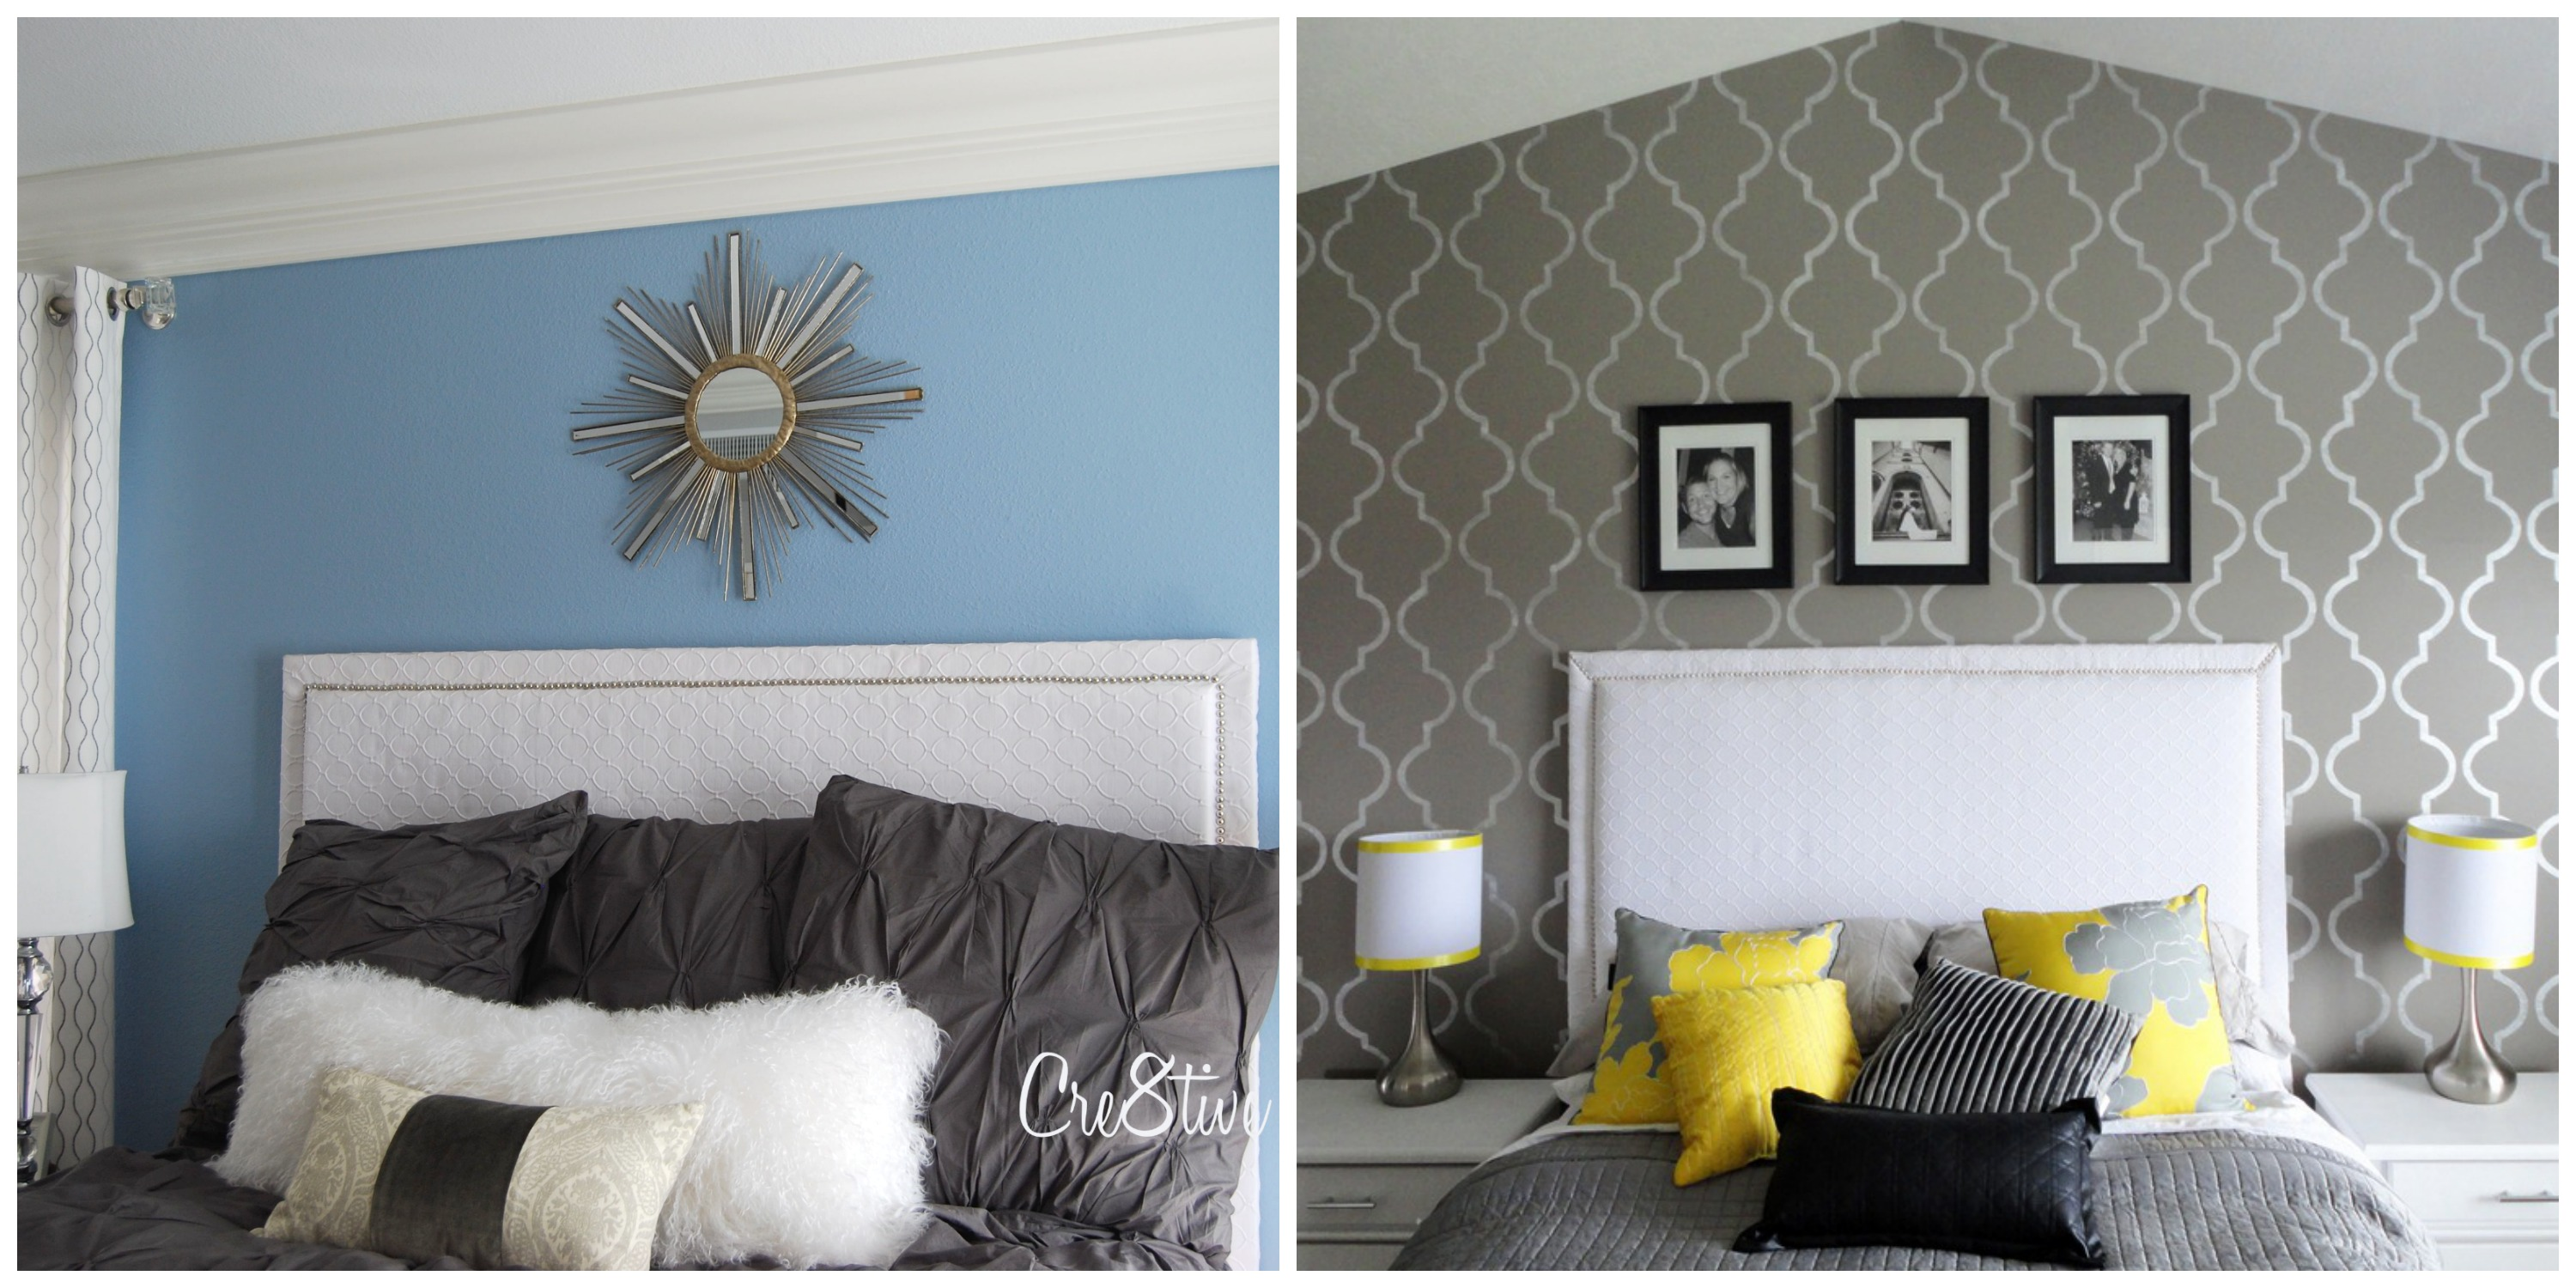 white upholstered headboards matched with gray bedding is one of good bed decor ideas